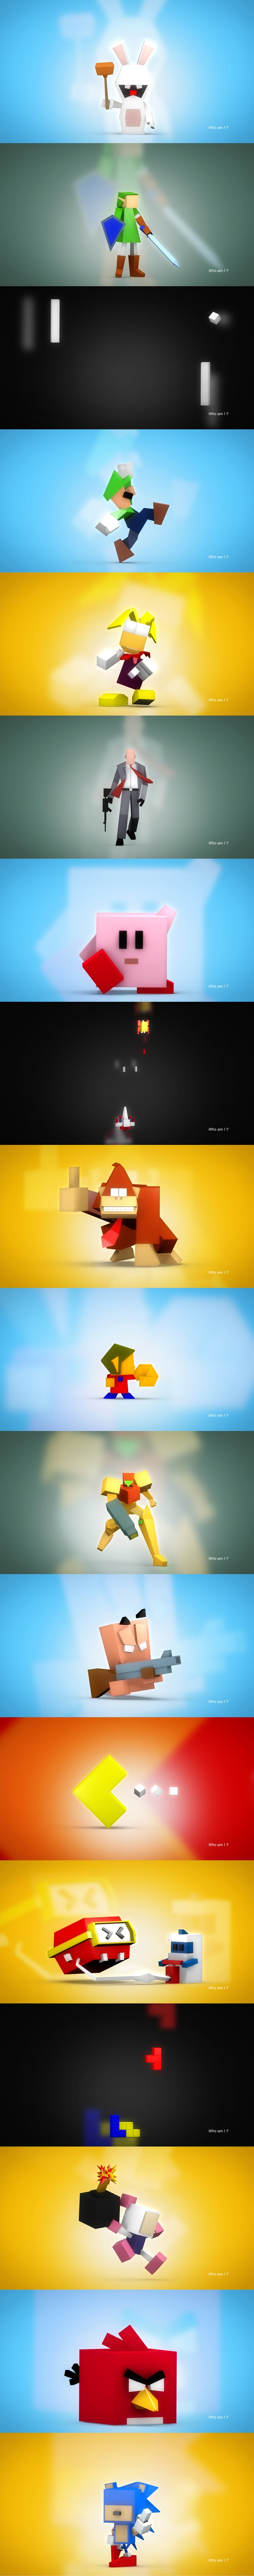 """Who am I ?"" by Guillaume Pinto 3D Graphic / Motion designer http://gp2097.free.fr"